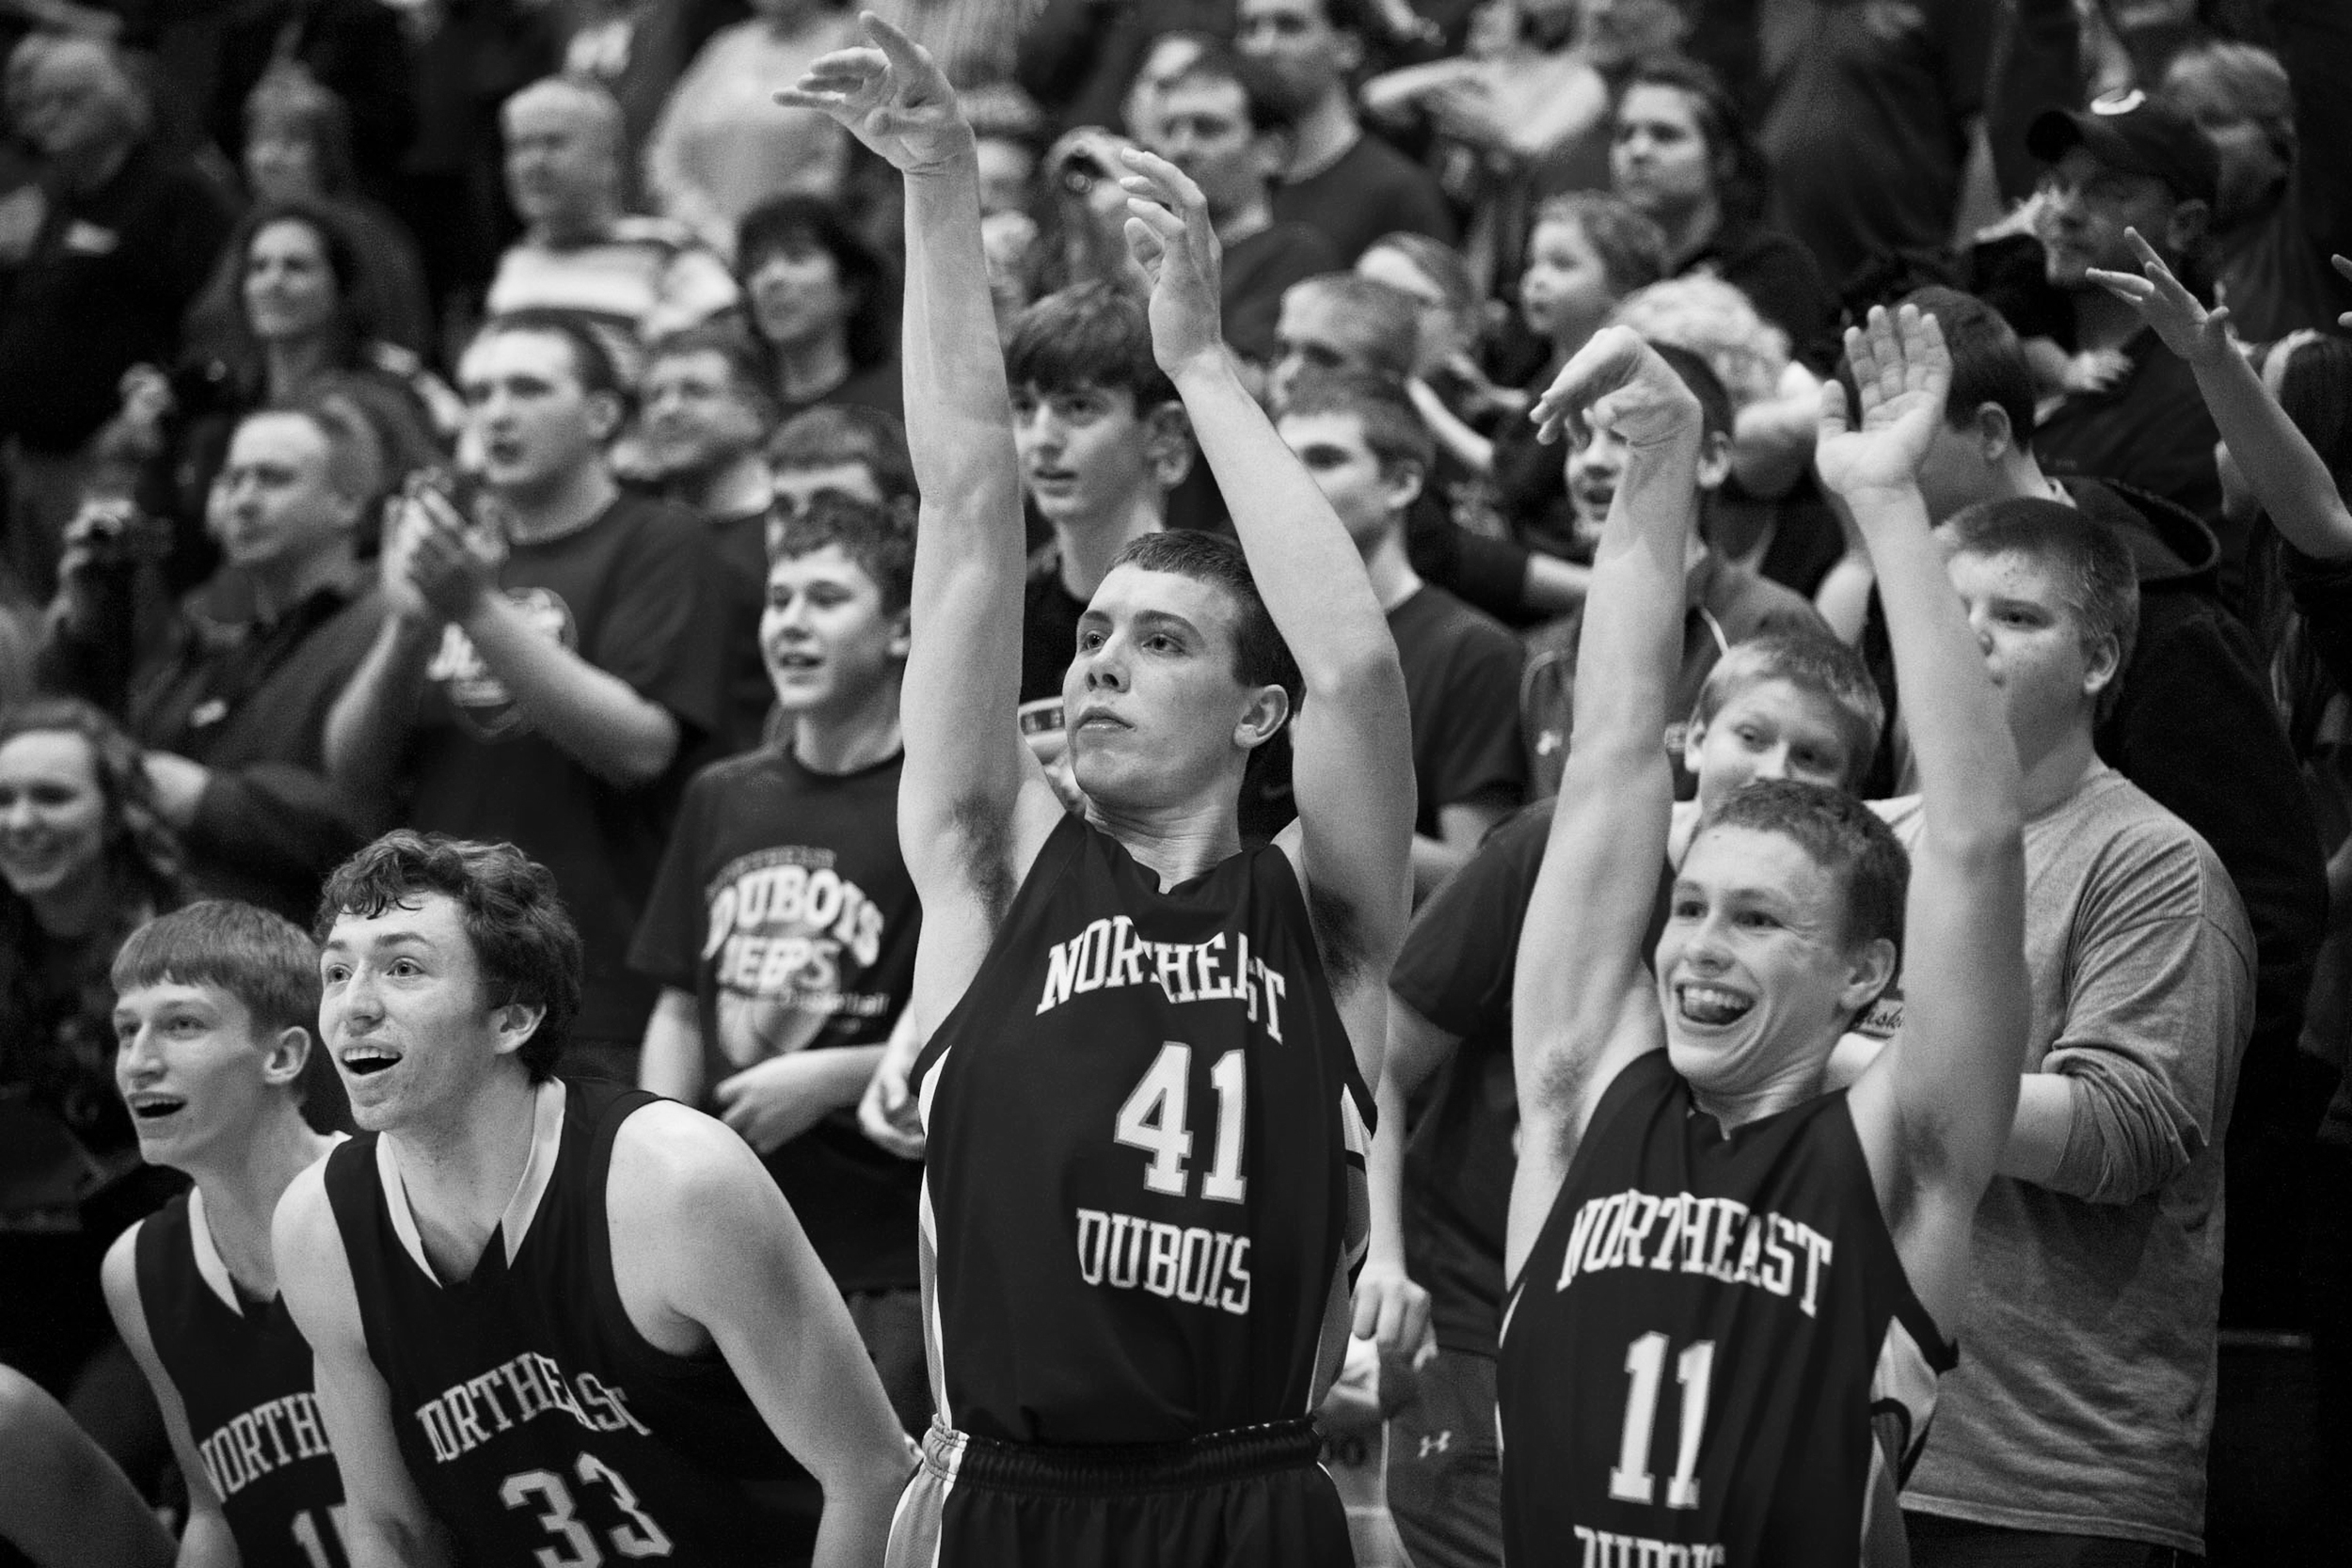 The Jeeps' Tyler Haas, left, Jacob Gress and Tristan Linne made a shooting motion from the bench just seconds before winning the IHSAA Class 1A sectional tournament against Tecumseh in Lynnville on Saturday. Northeast Dubois won 55-45.